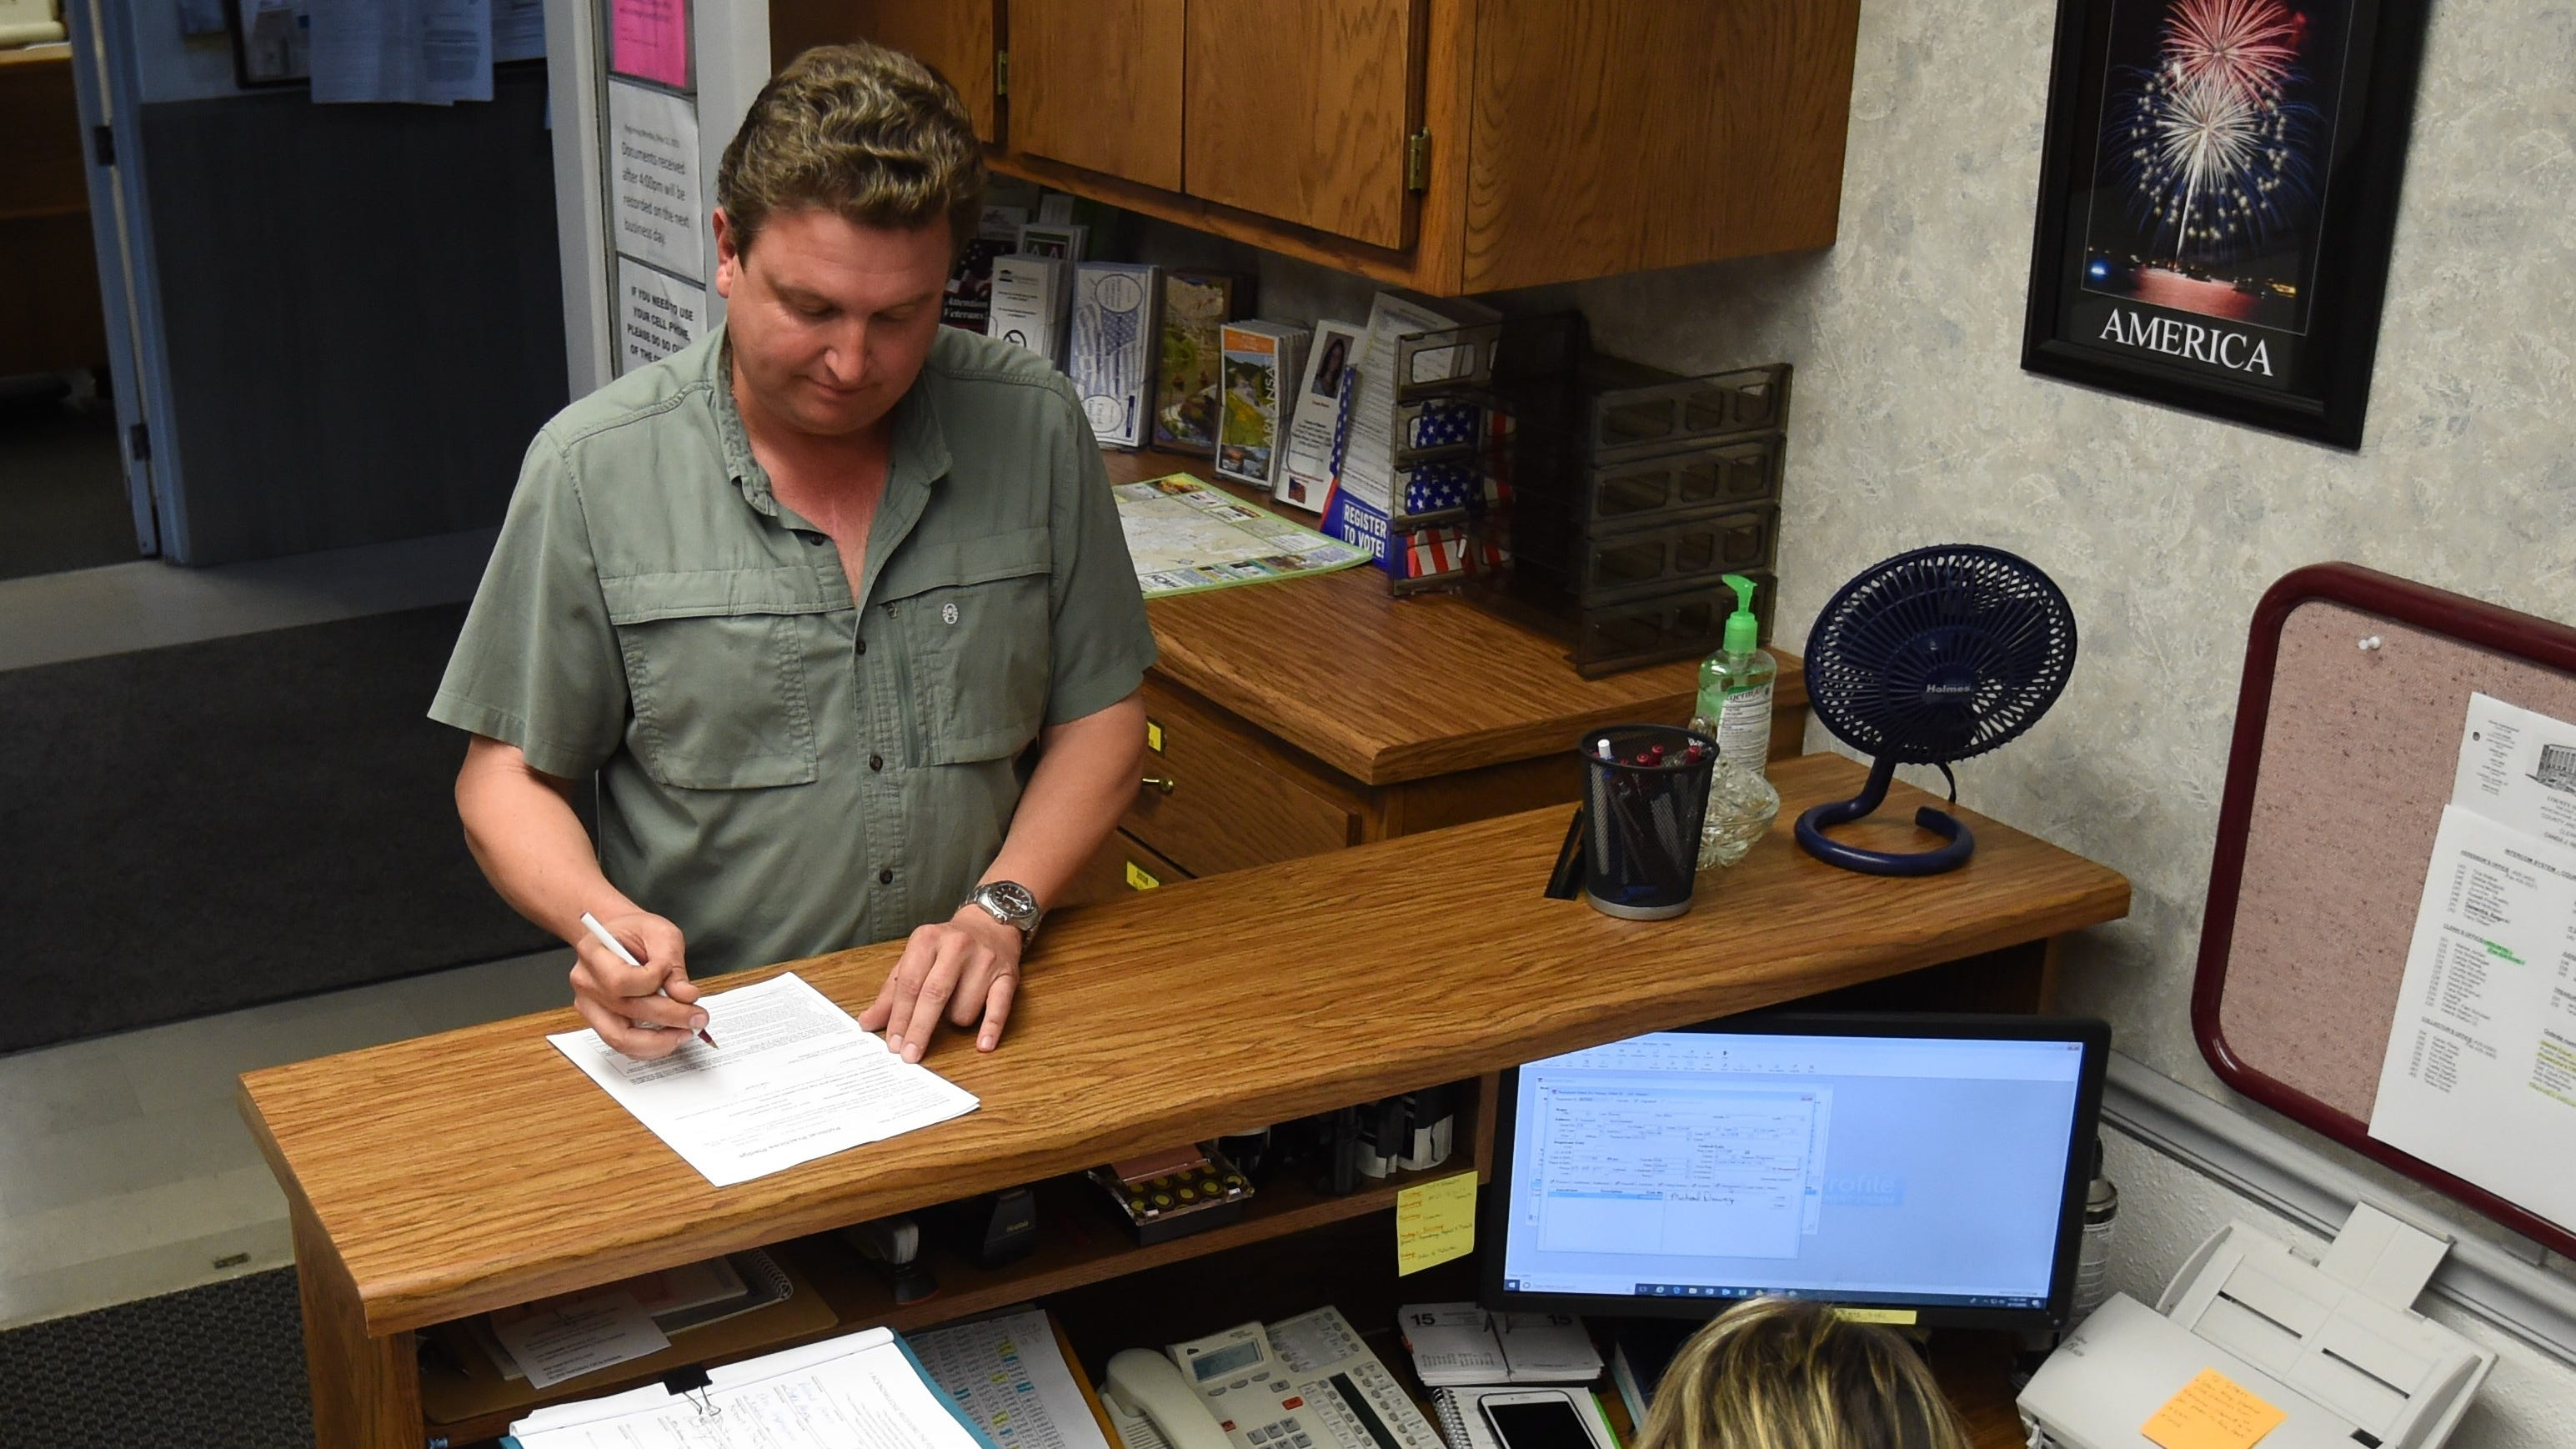 Thom Embach completes his paperwork Friday to run for the Ward 1, Position 2 seat on the Gassville City Council. Friday at noon was the deadline to file to run for a municipal office in November.